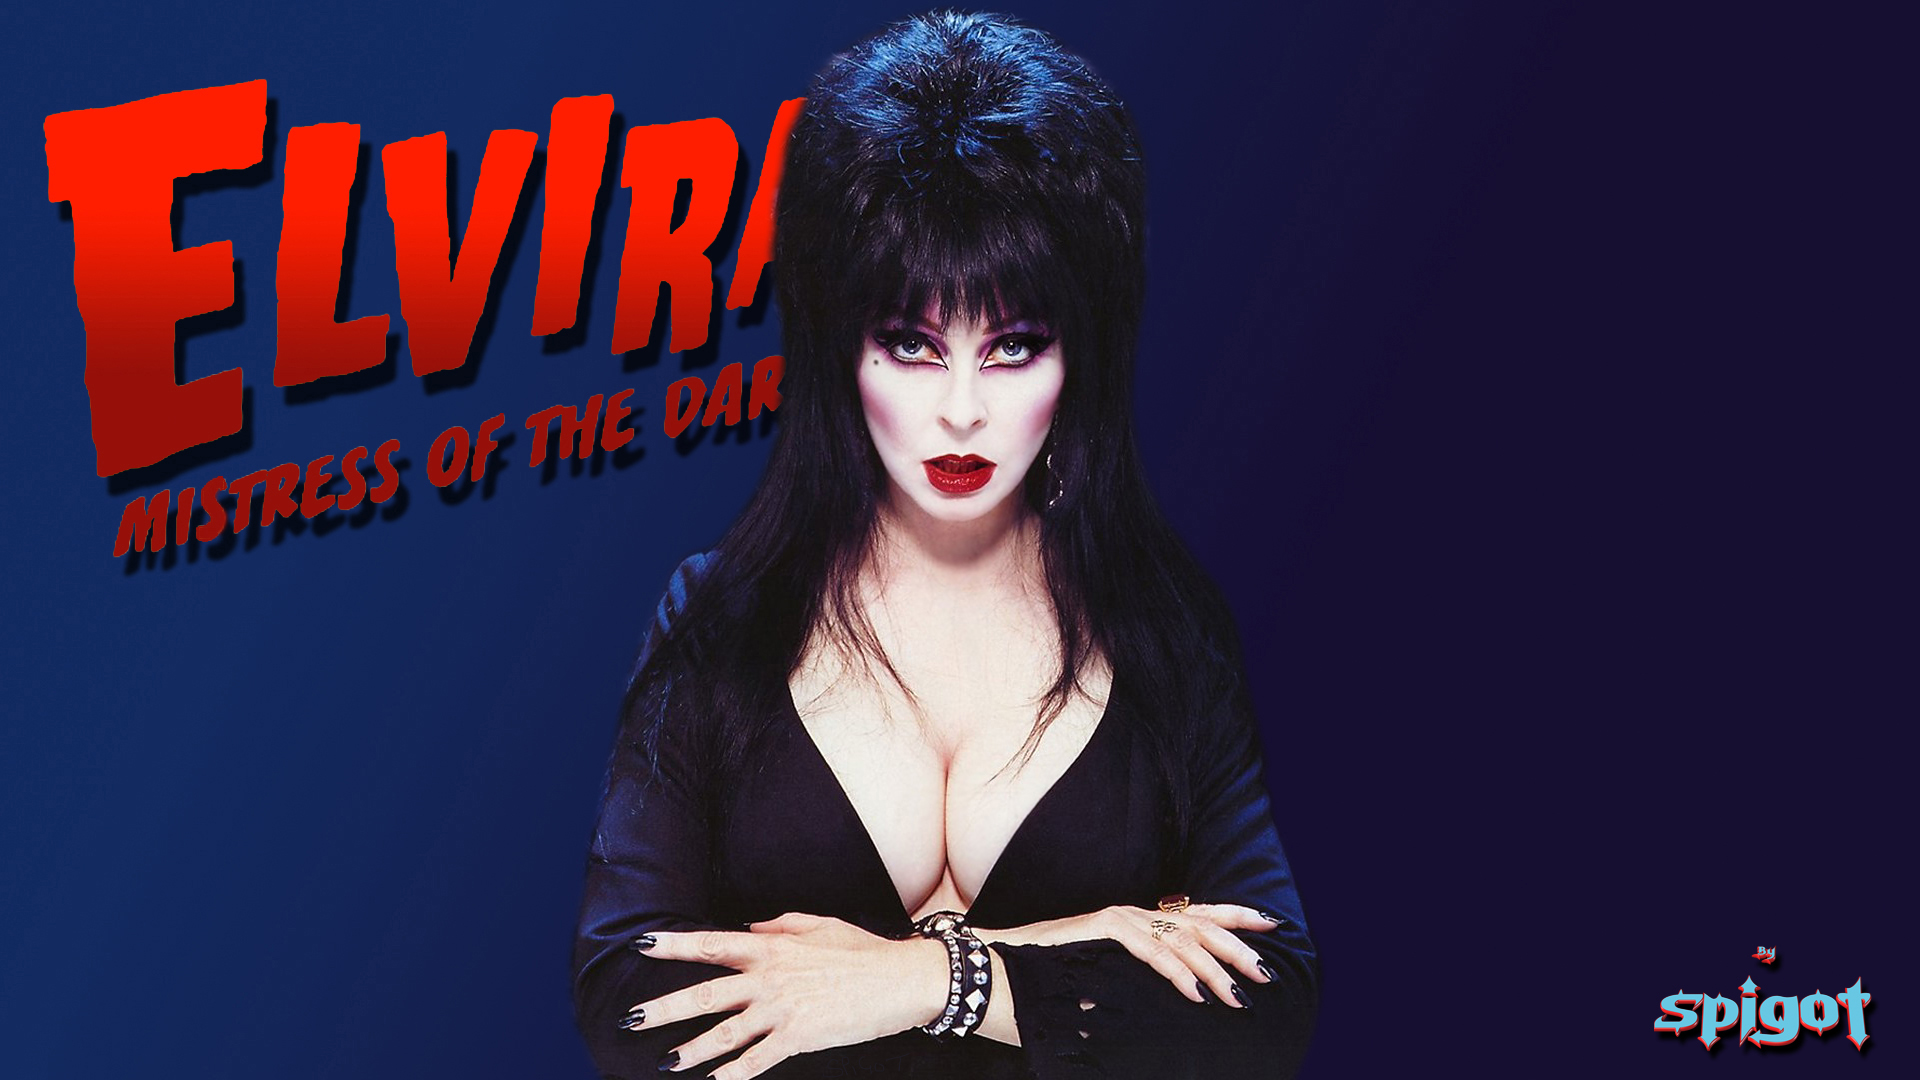 Elvira Halloween Wallpaper 31 George Spigots Blog 1920x1080